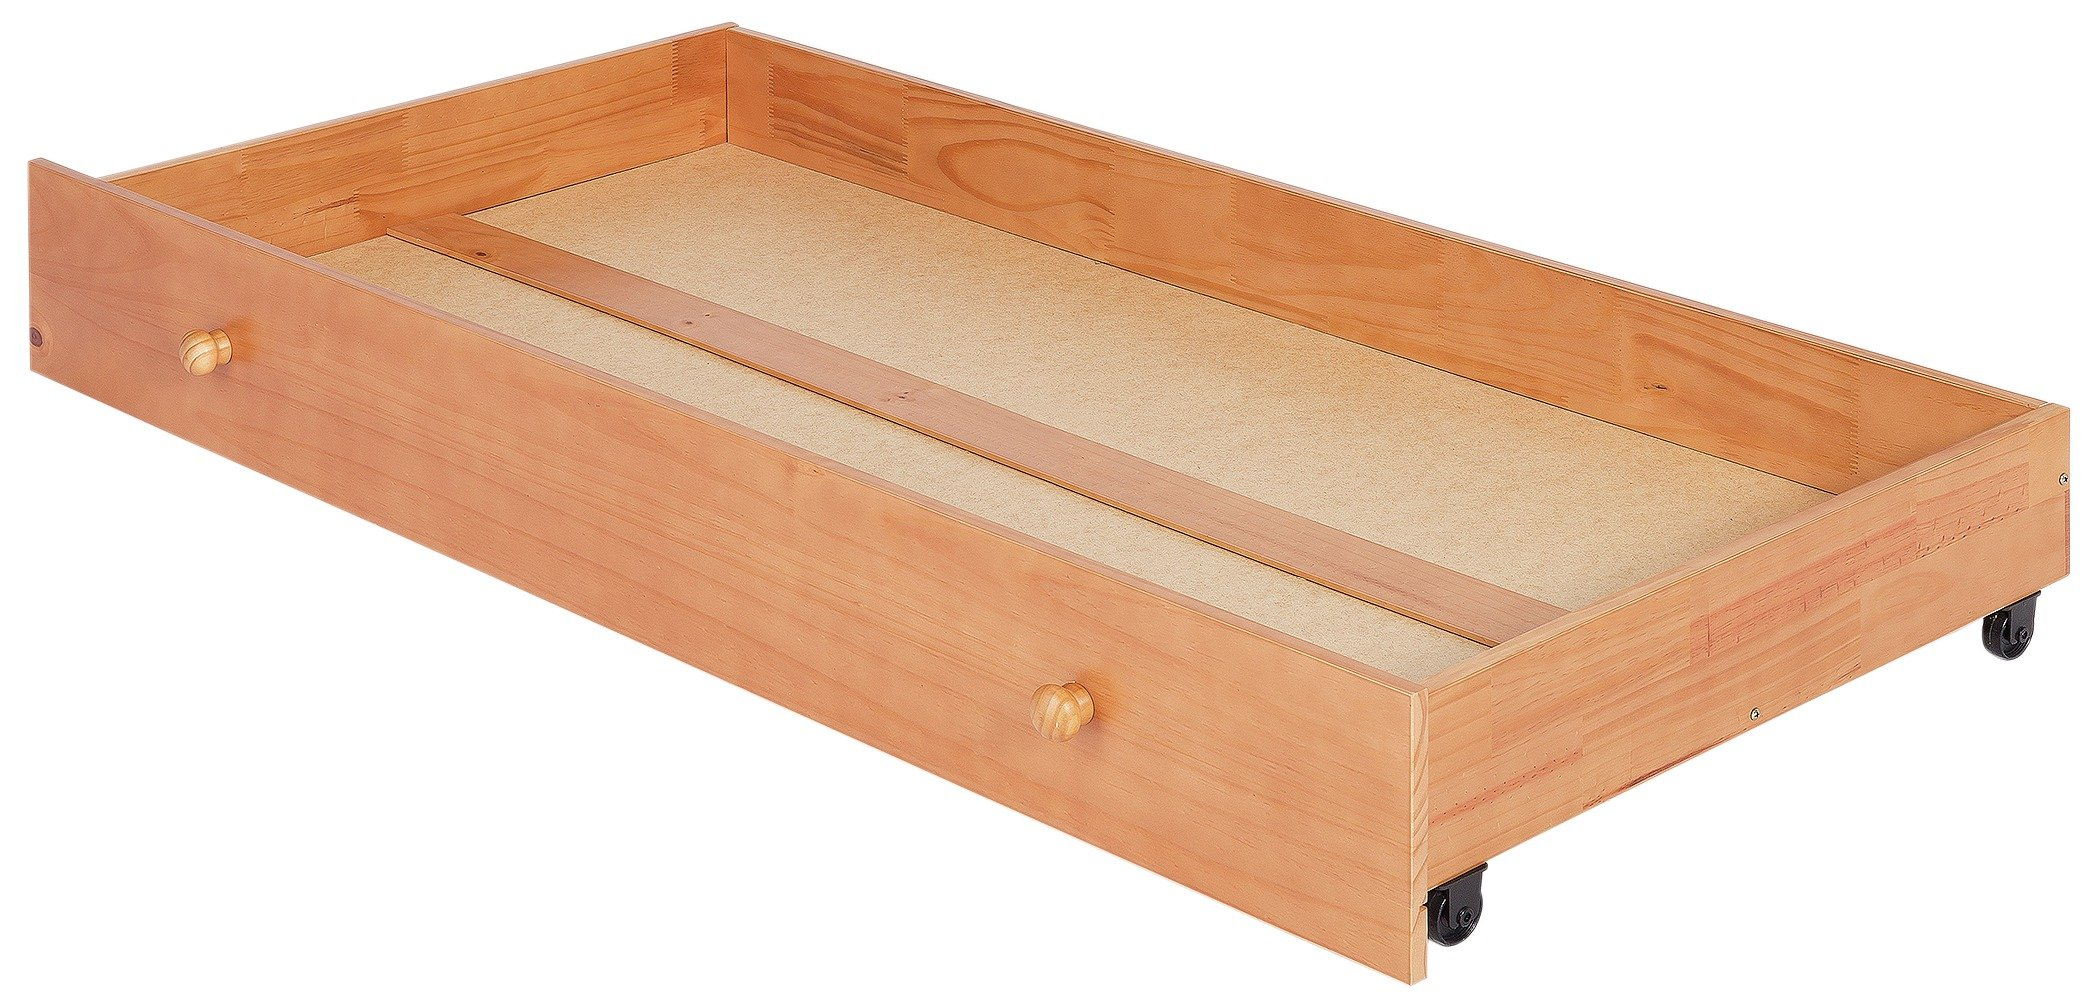 Image of BabyStart - Oxford Undercot Drawer - Pine with Oak Finish